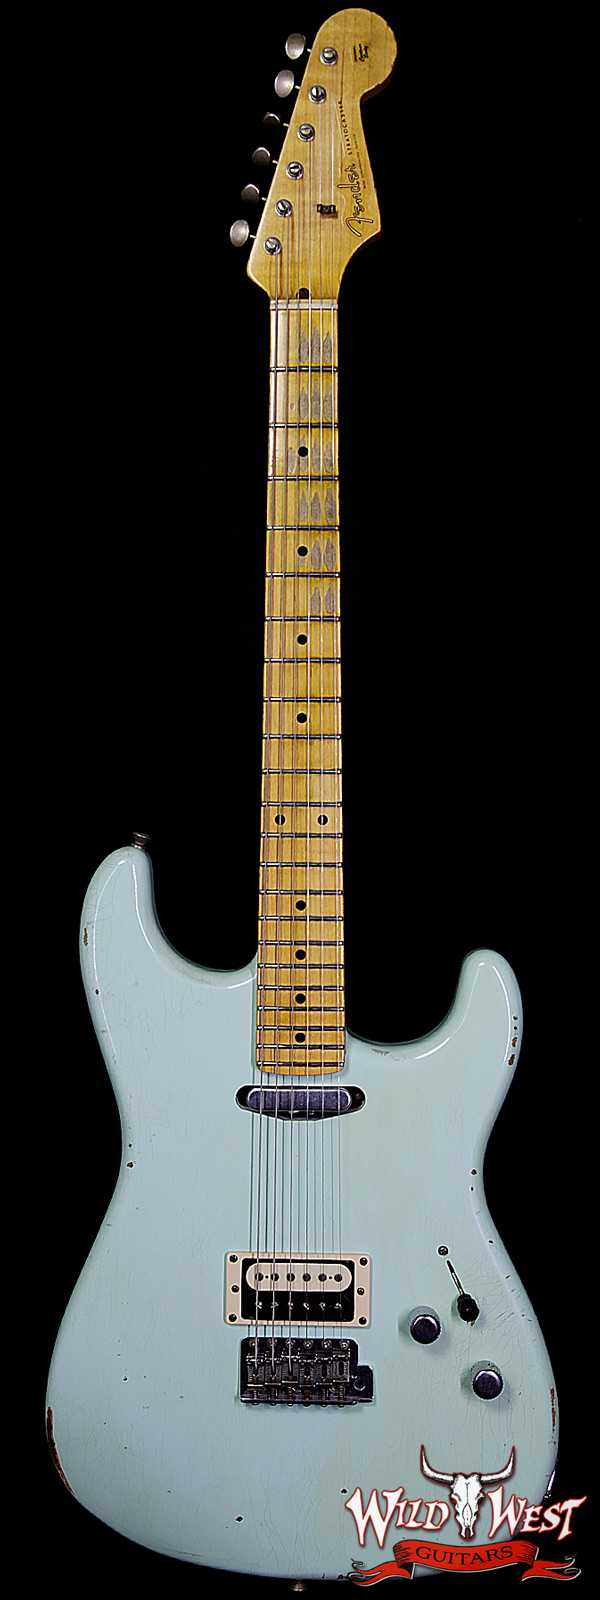 Fender Custom Shop Limited Relic H/S Stratocaster Guitar Aged Surf Green